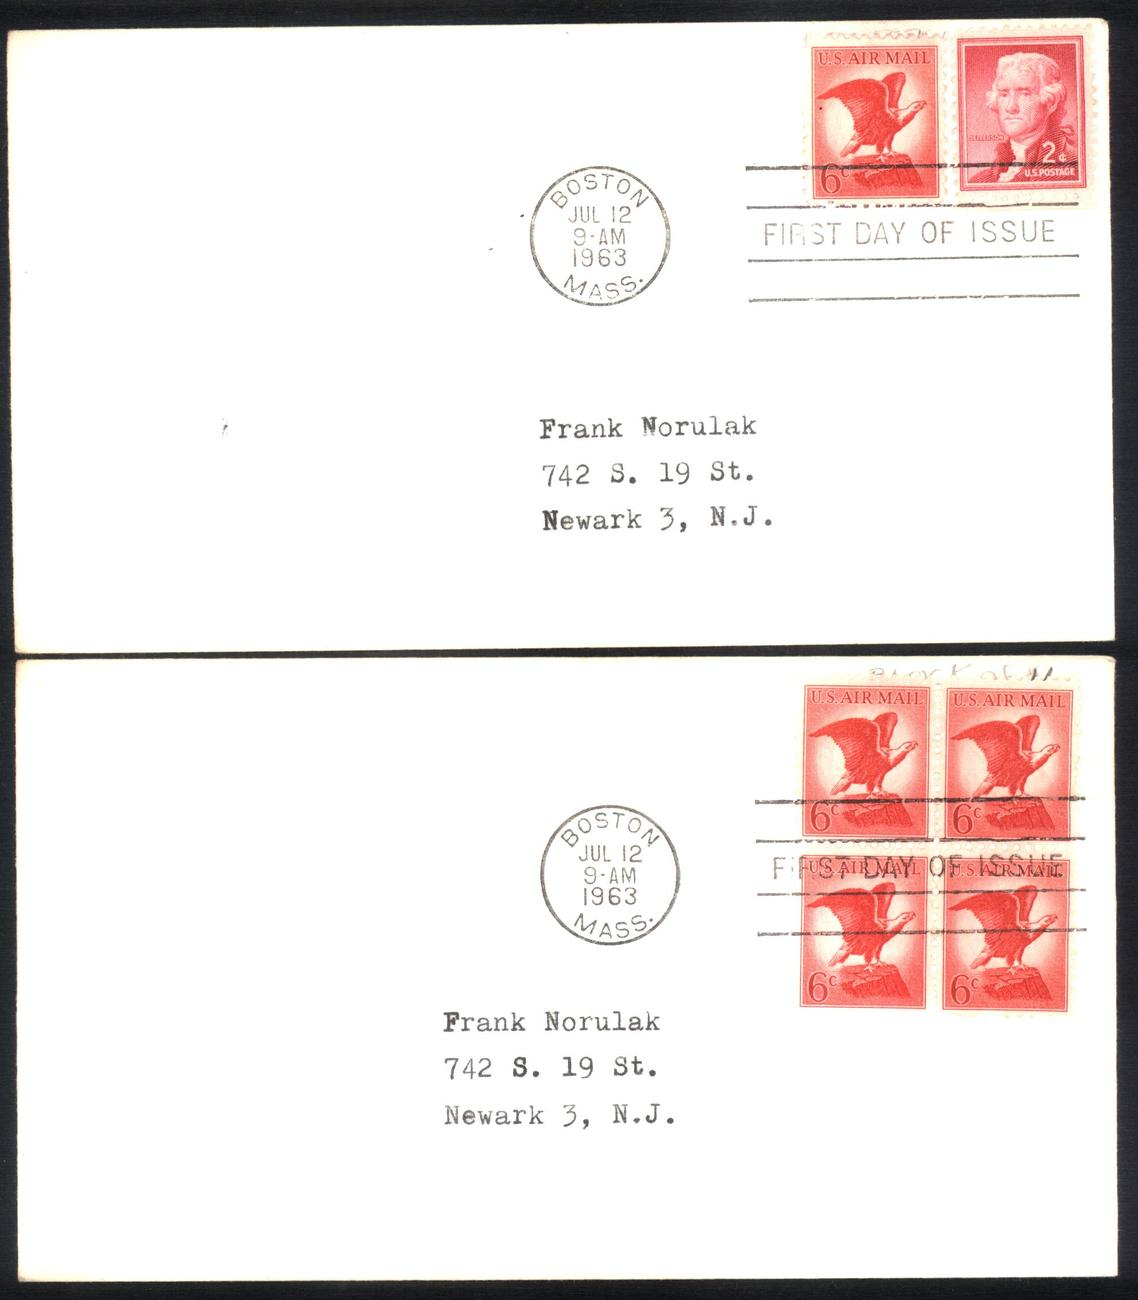 6 cents airmail fdc